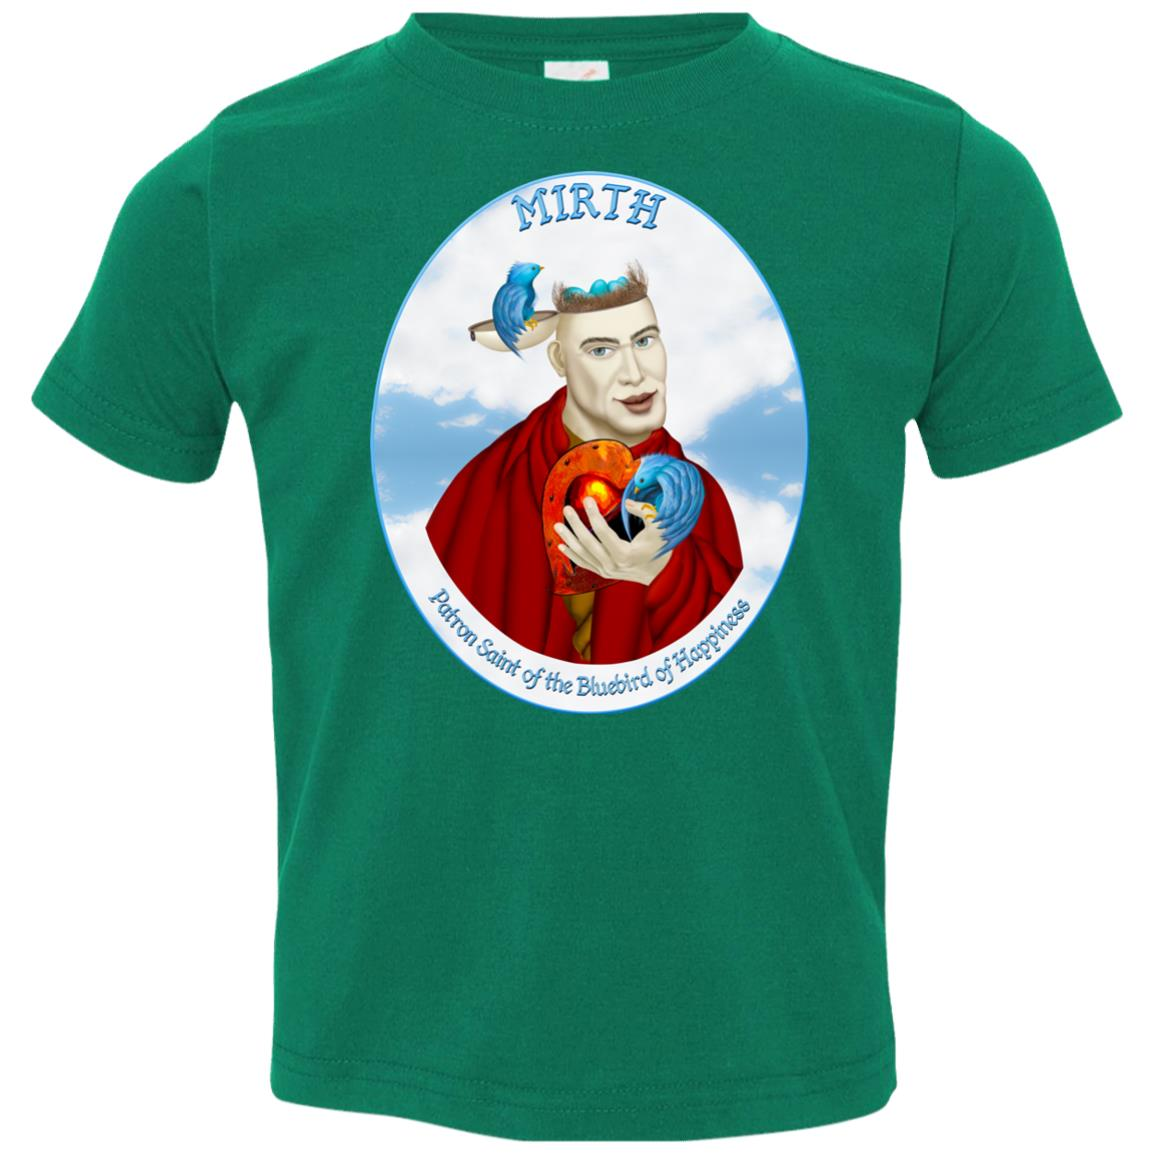 MIRTH - Premium Toddler T-Shirt